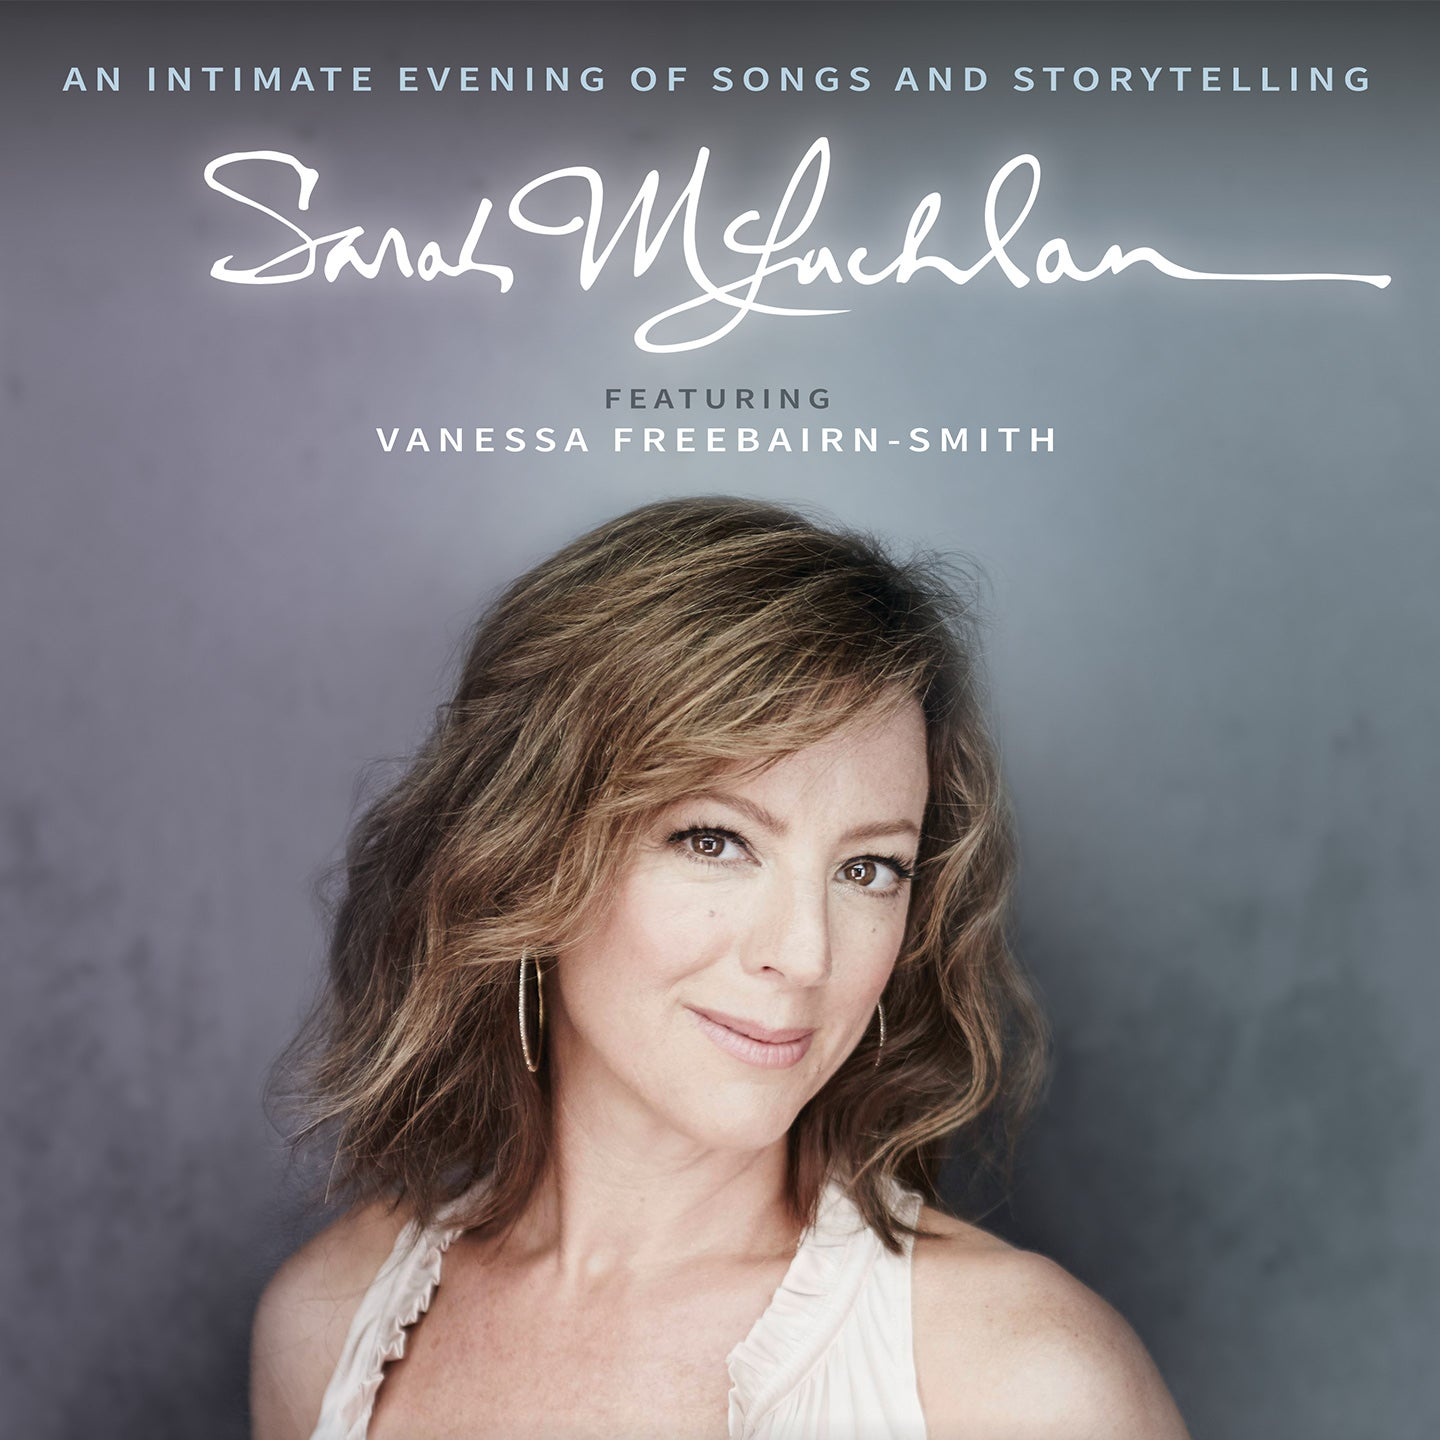 Sarah McLachlan featuring Vanessa Freebairn-Smith: An Intimate Evening of Songs and Storytelling